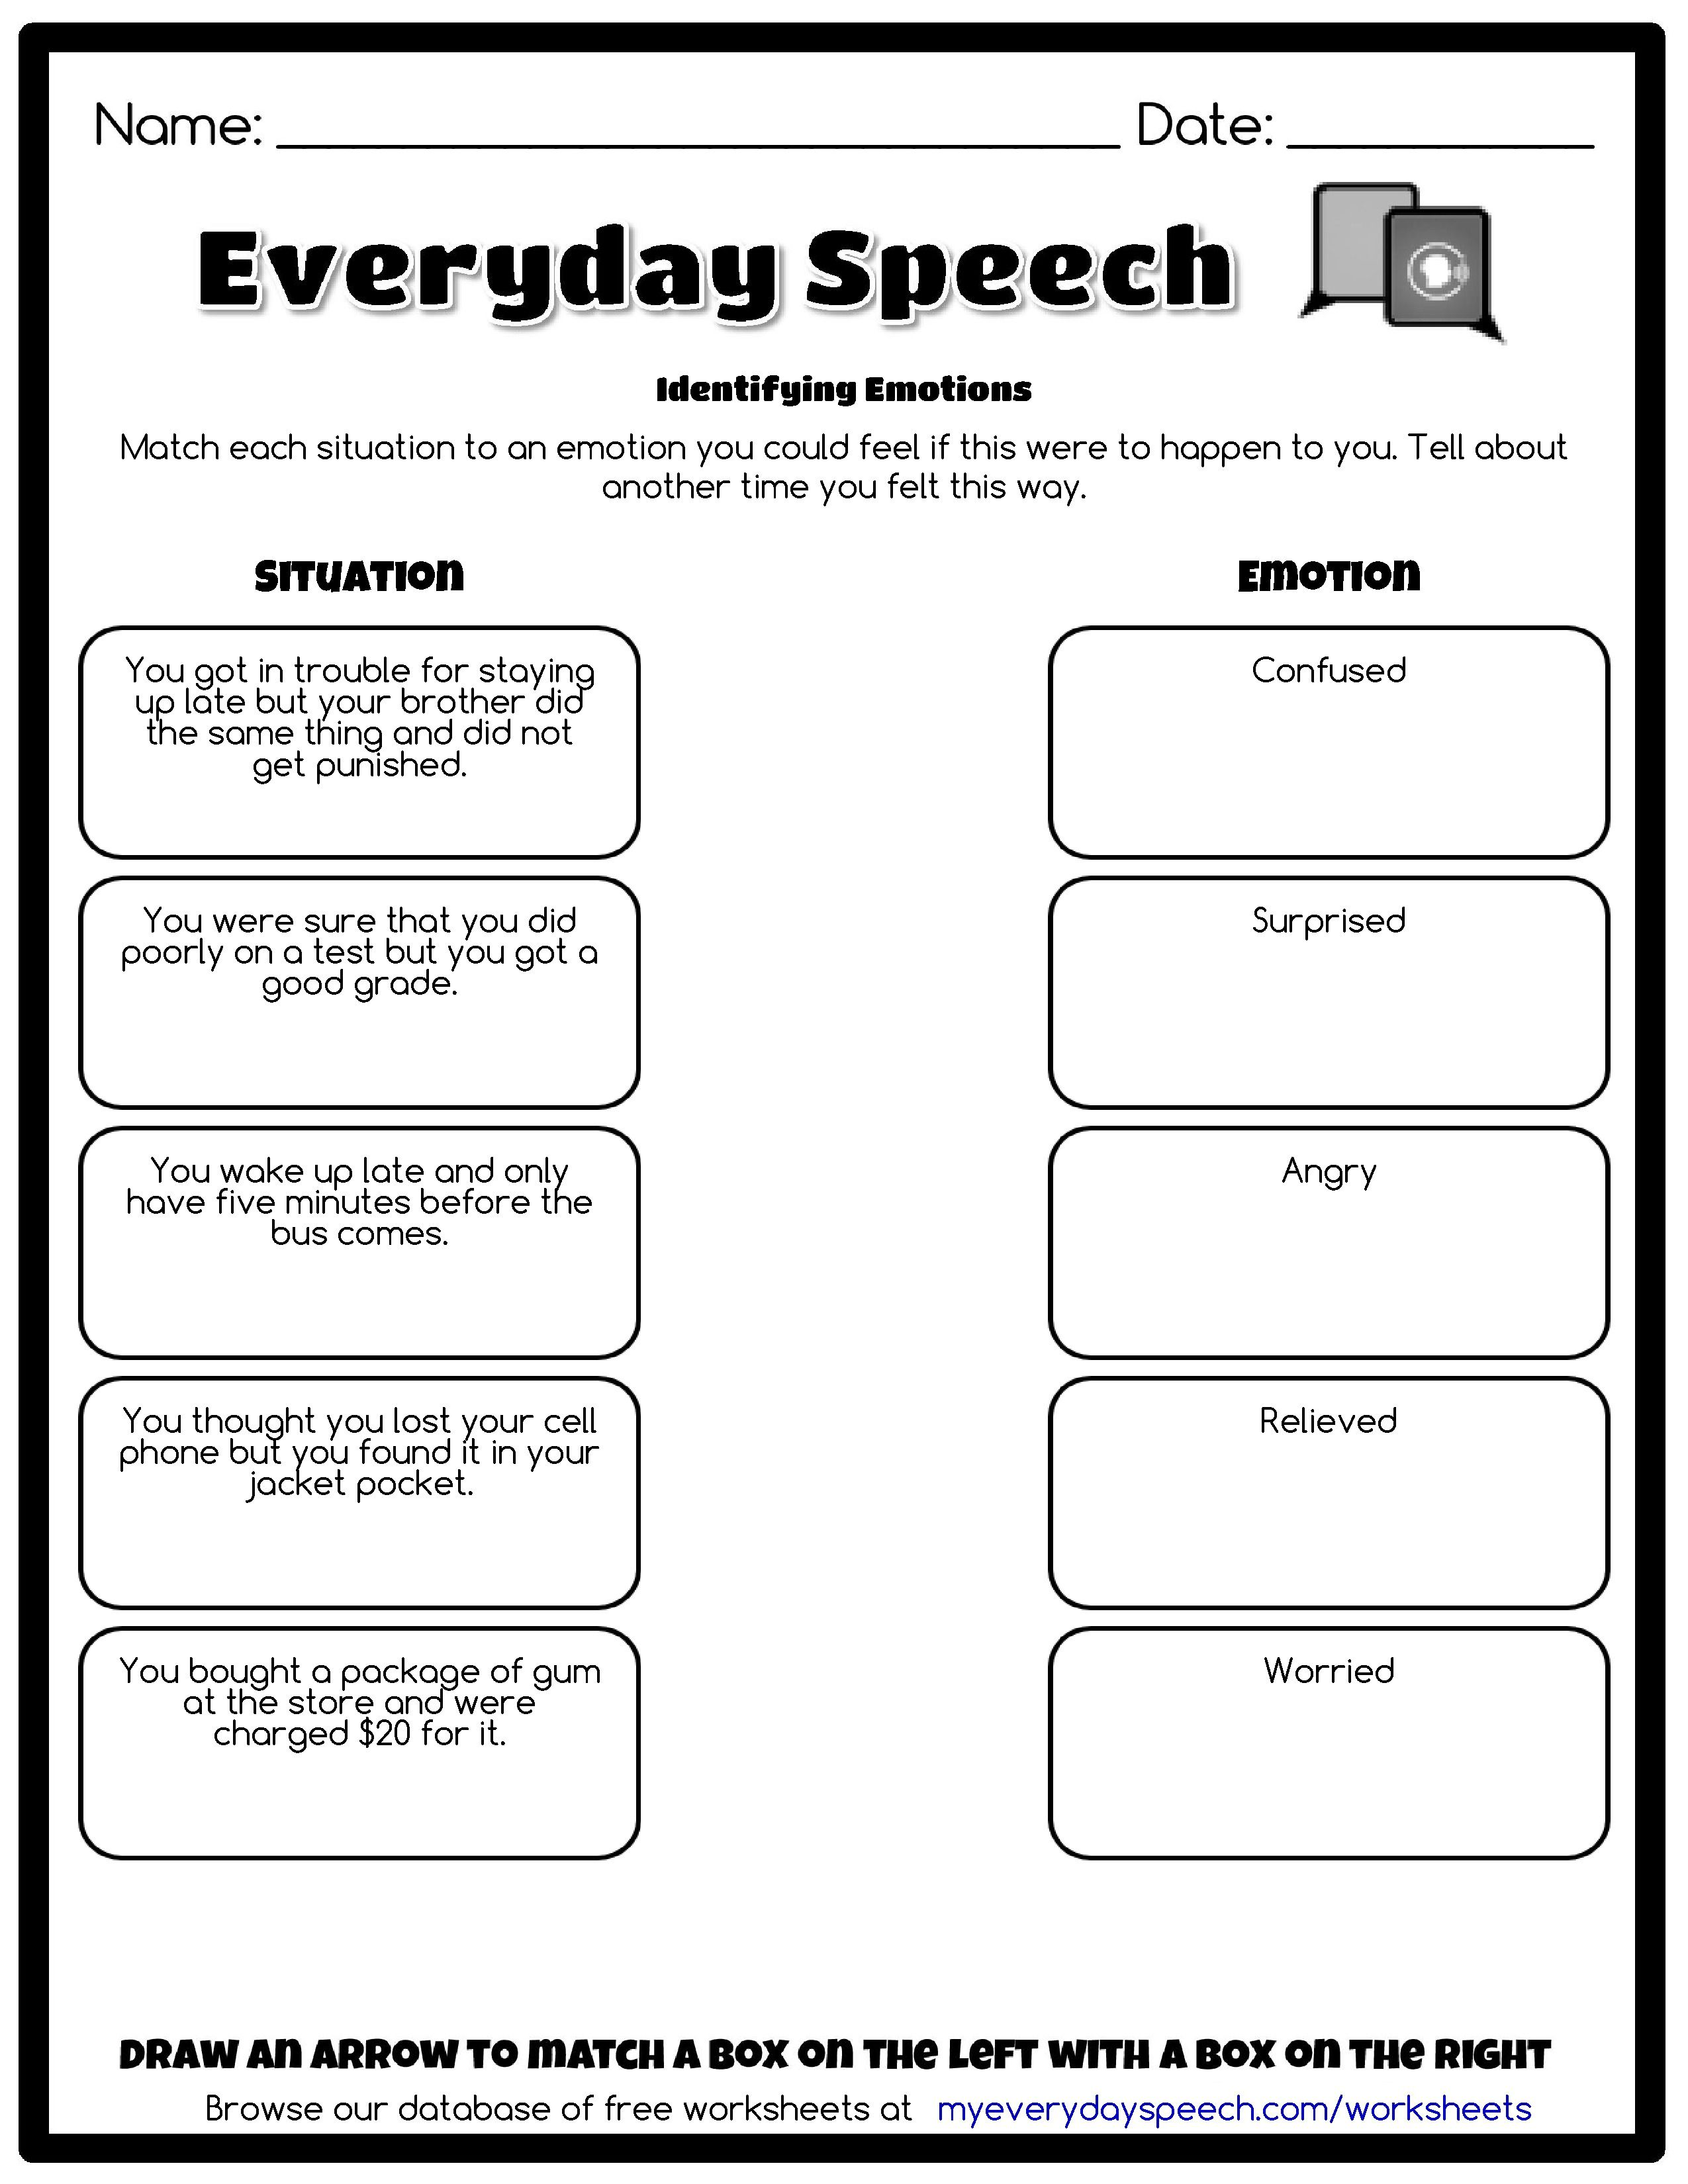 Check Out The Worksheet I Just Made Using Everyday Speech